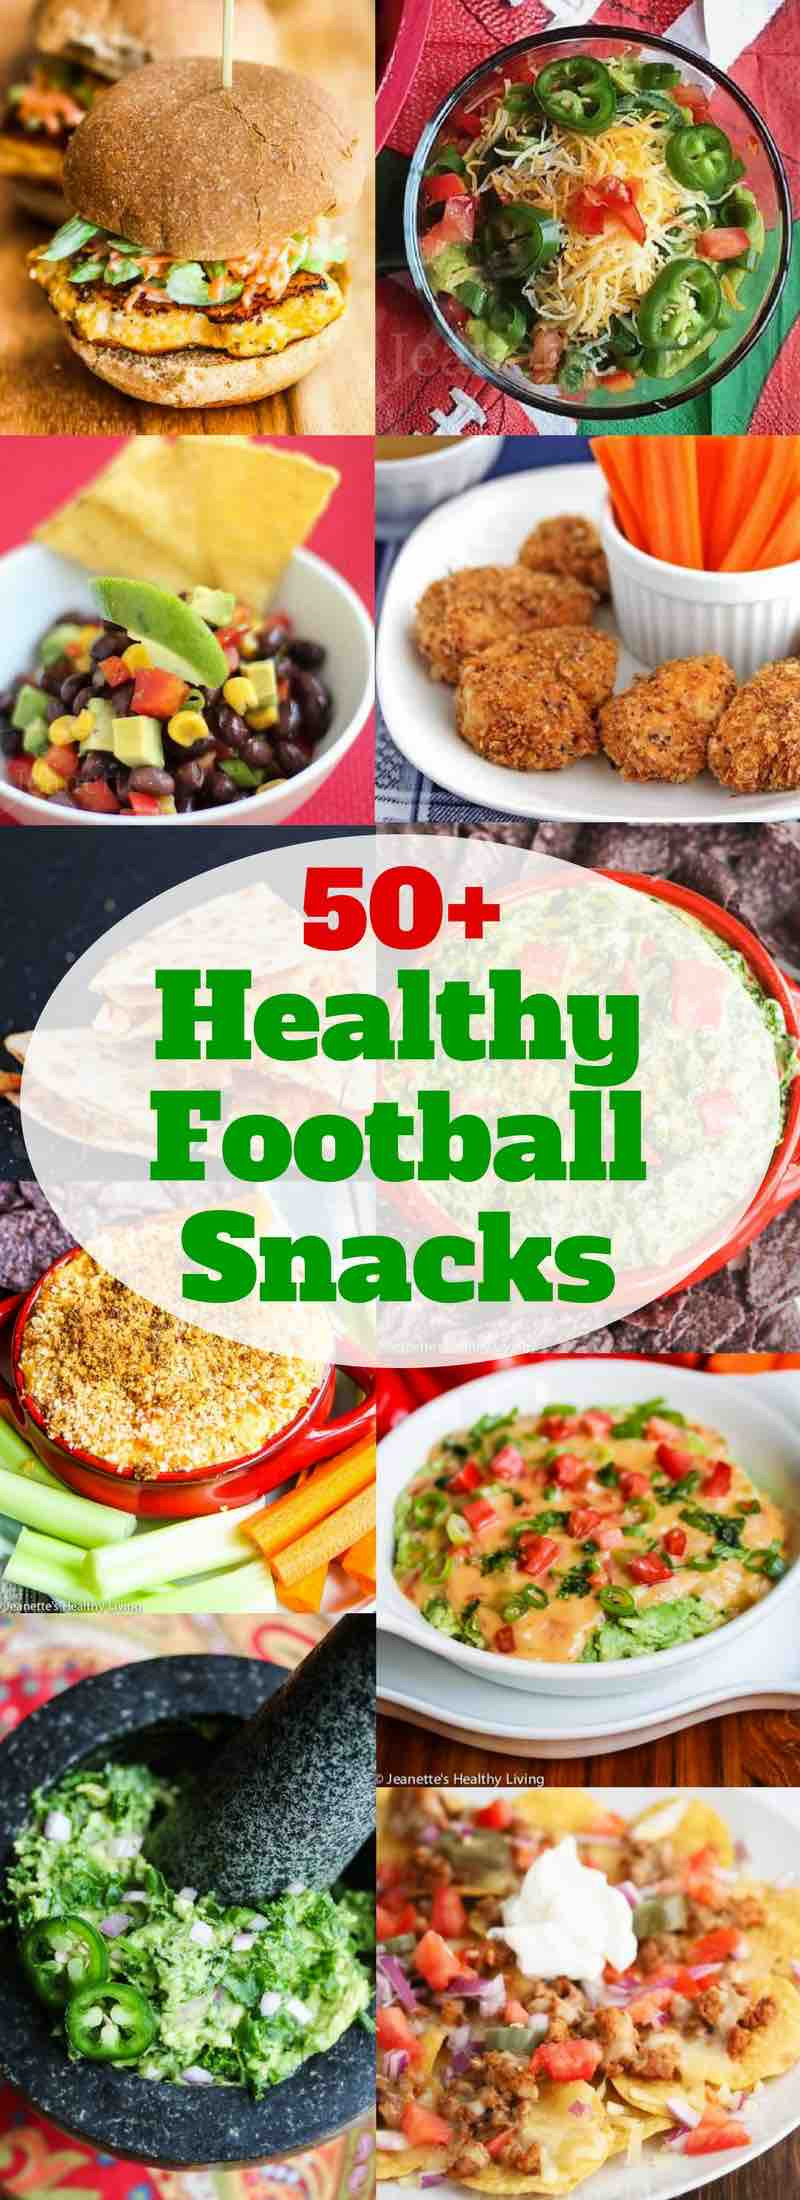 Healthy Football Game Appetizers  50 Healthy Football Snacks Jeanette s Healthy Living